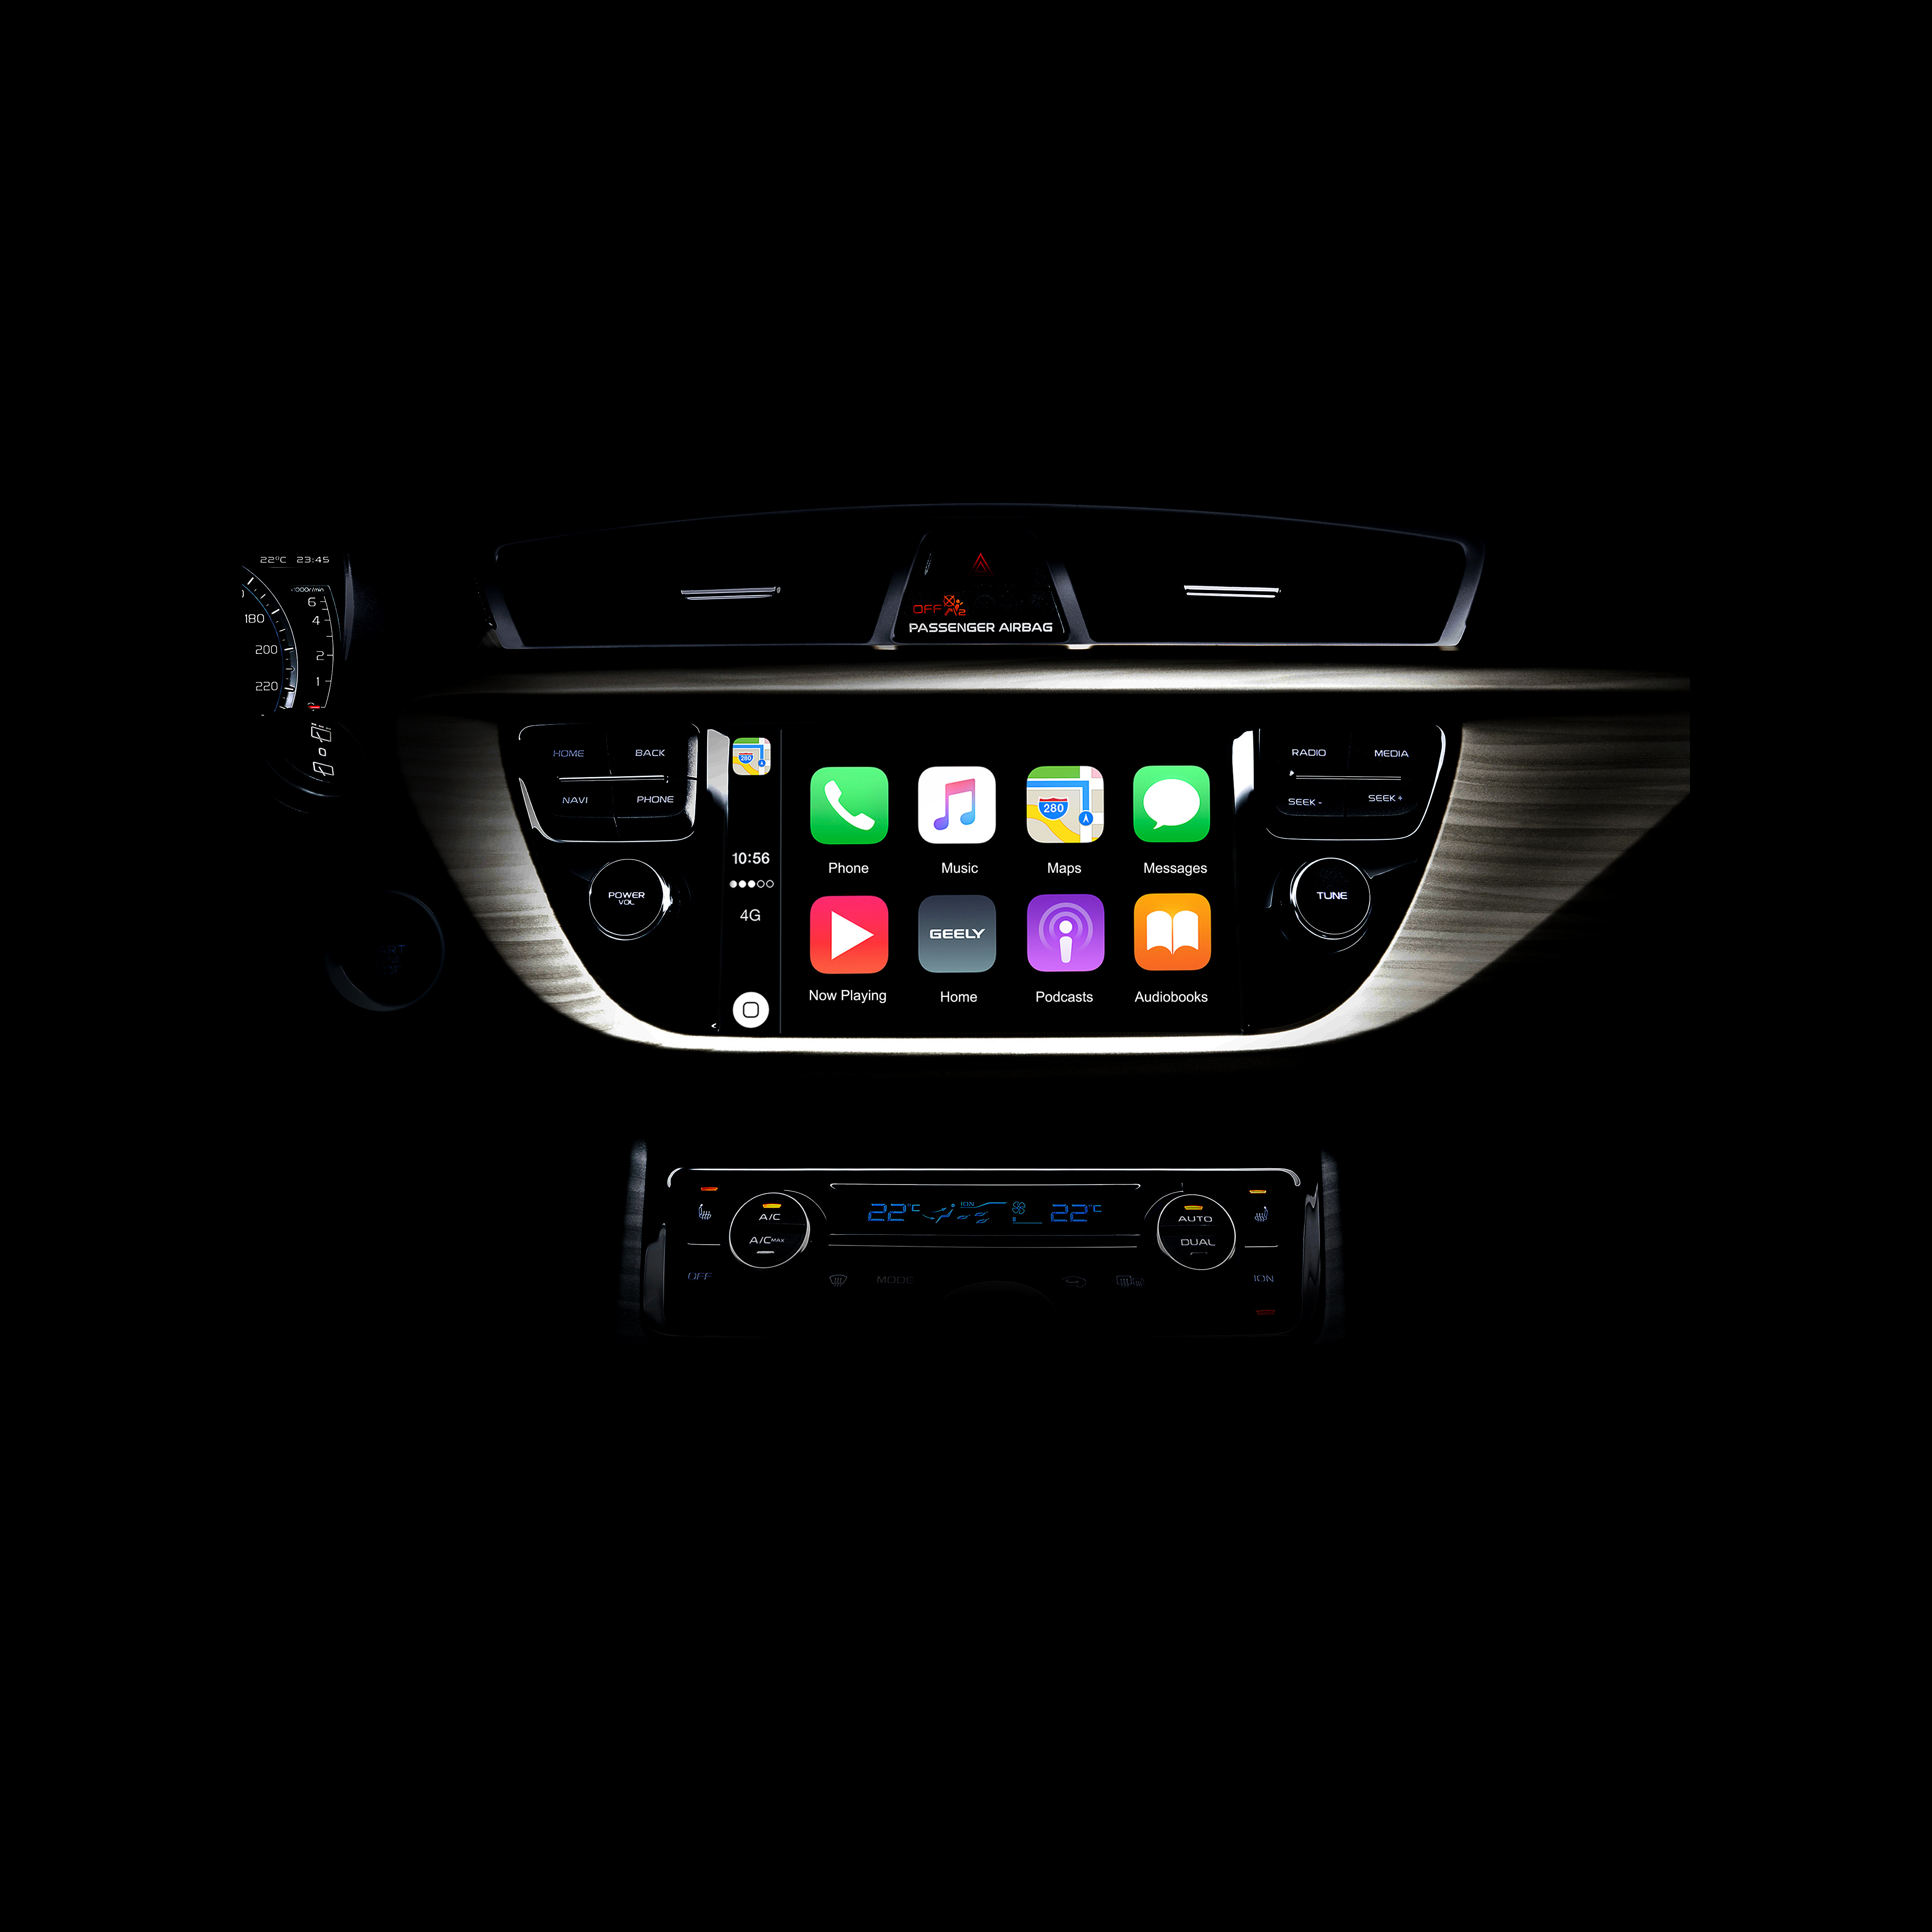 EMGRAND X7 SPORT is coming